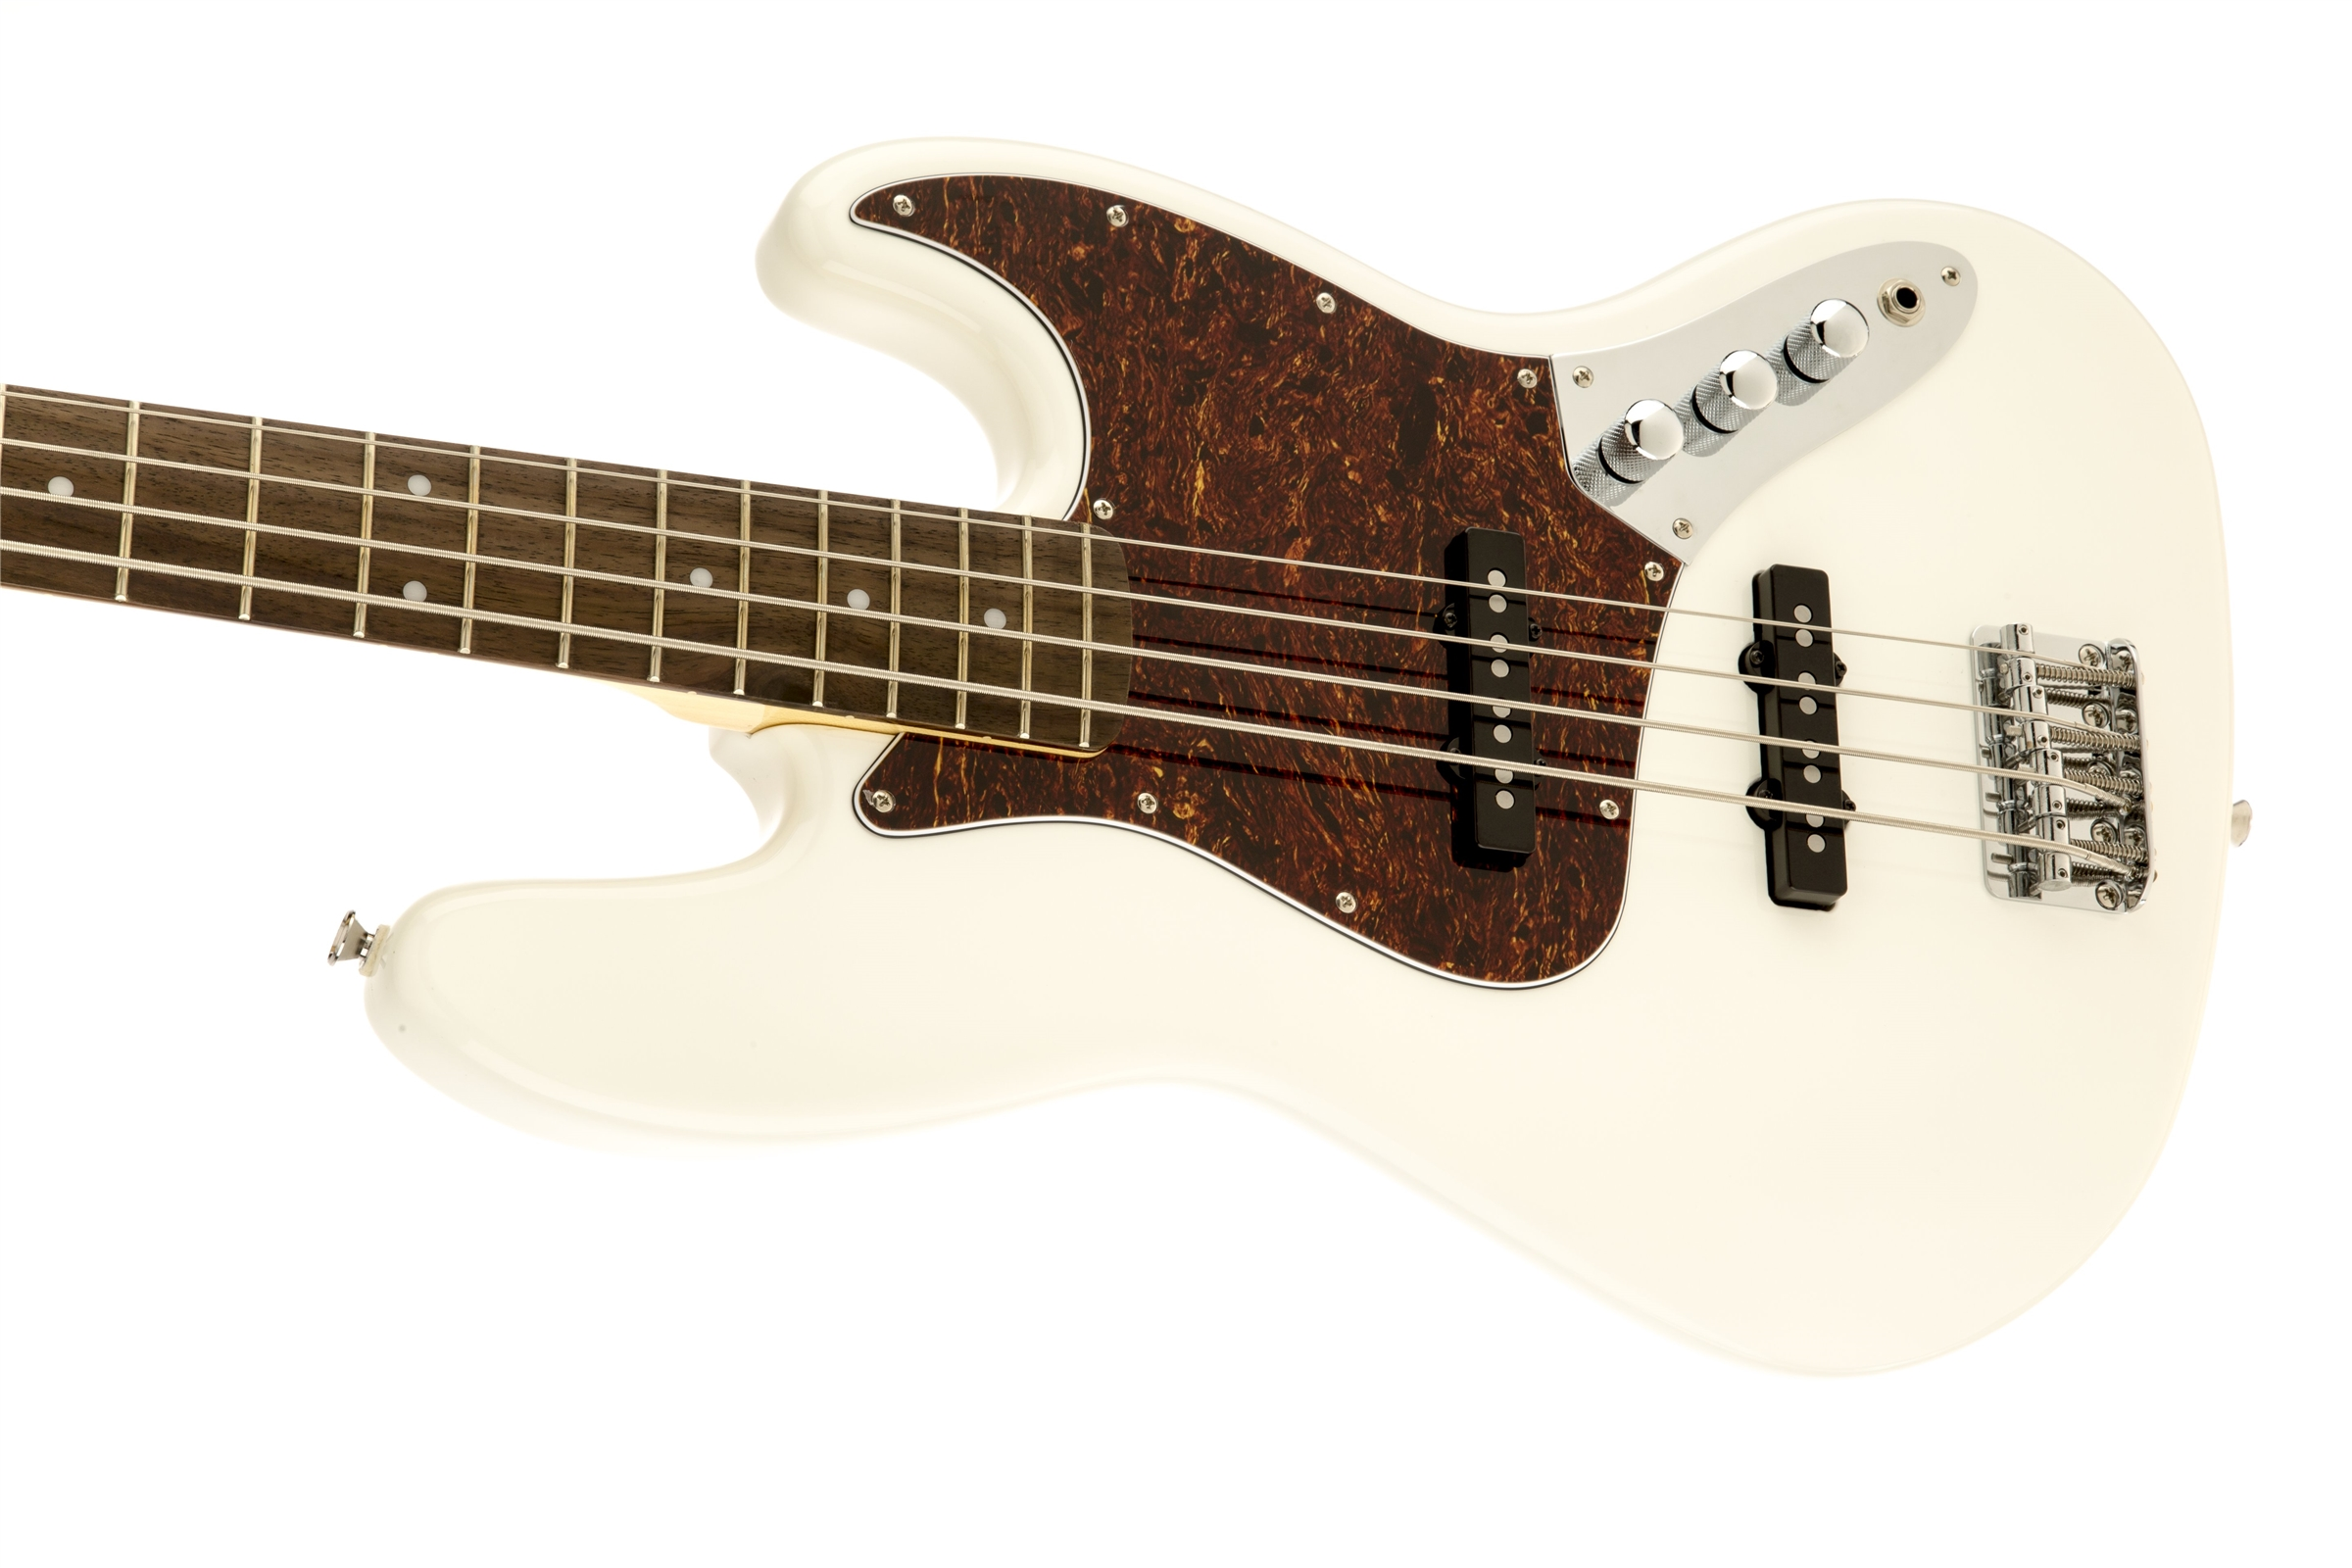 Vintage Modified Jazz Bass Squier Electric Basses